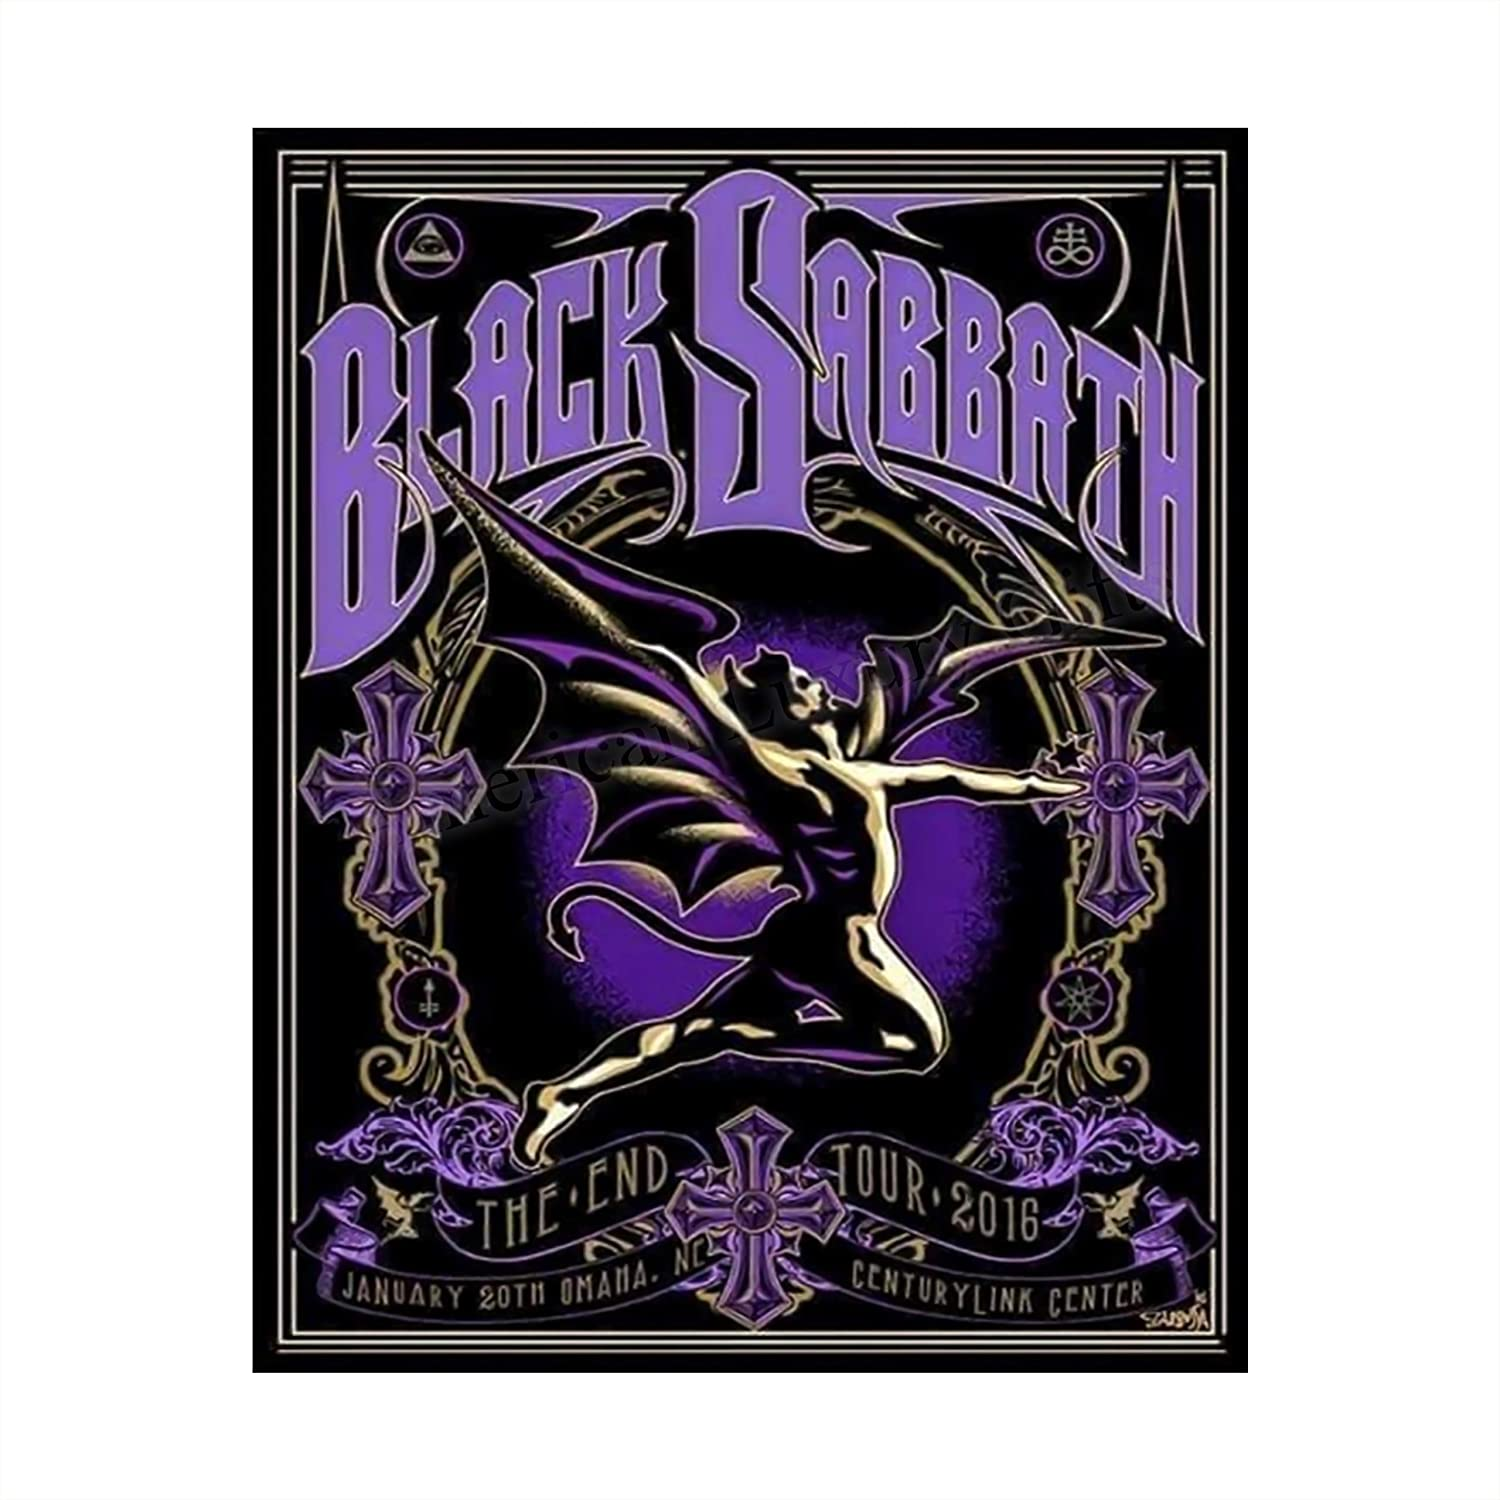 """Black Sabbath Classic Logo Poster Print-8 x 10"""" Rock Band Wall Art-Ready to Frame. Vintage Home-Studio-Bar-Cave Decor. Great Gift for Heavy Metal Music Lovers! Perfect for Ozzy-Black Sabbath Fans!"""